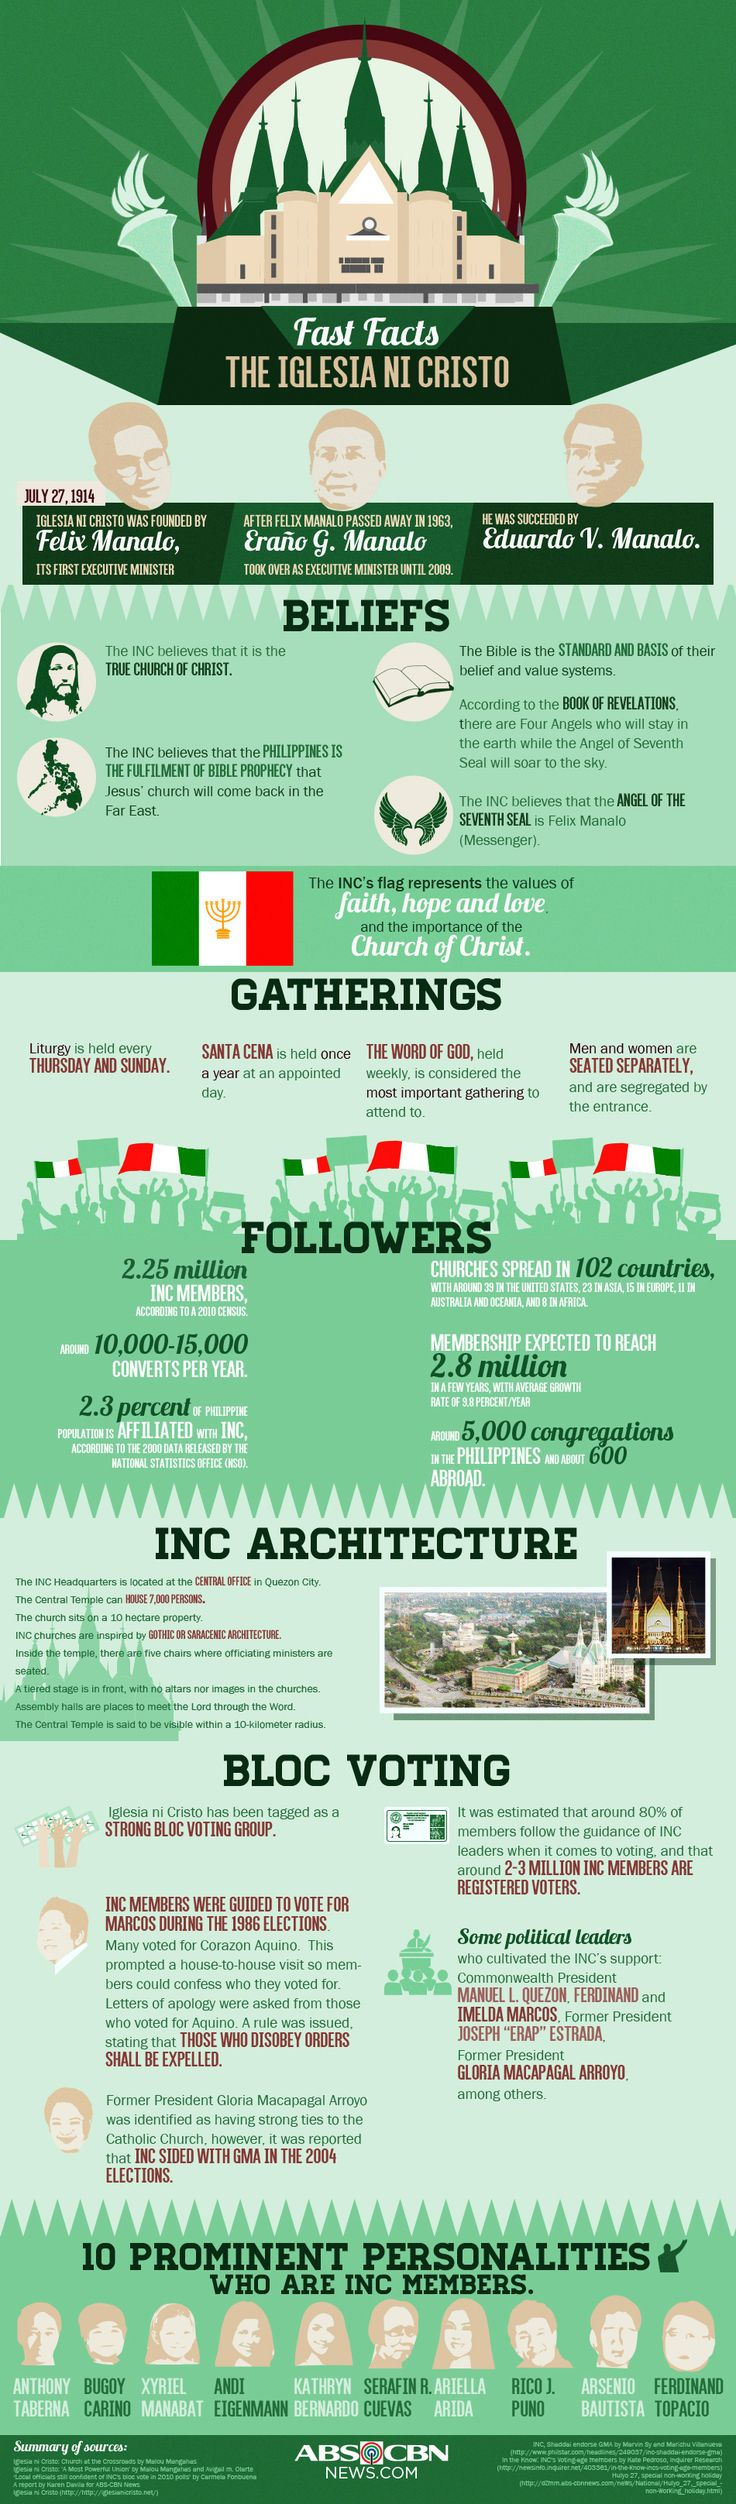 INFOGRAPHIC: Quick facts on Iglesia ni Cristo